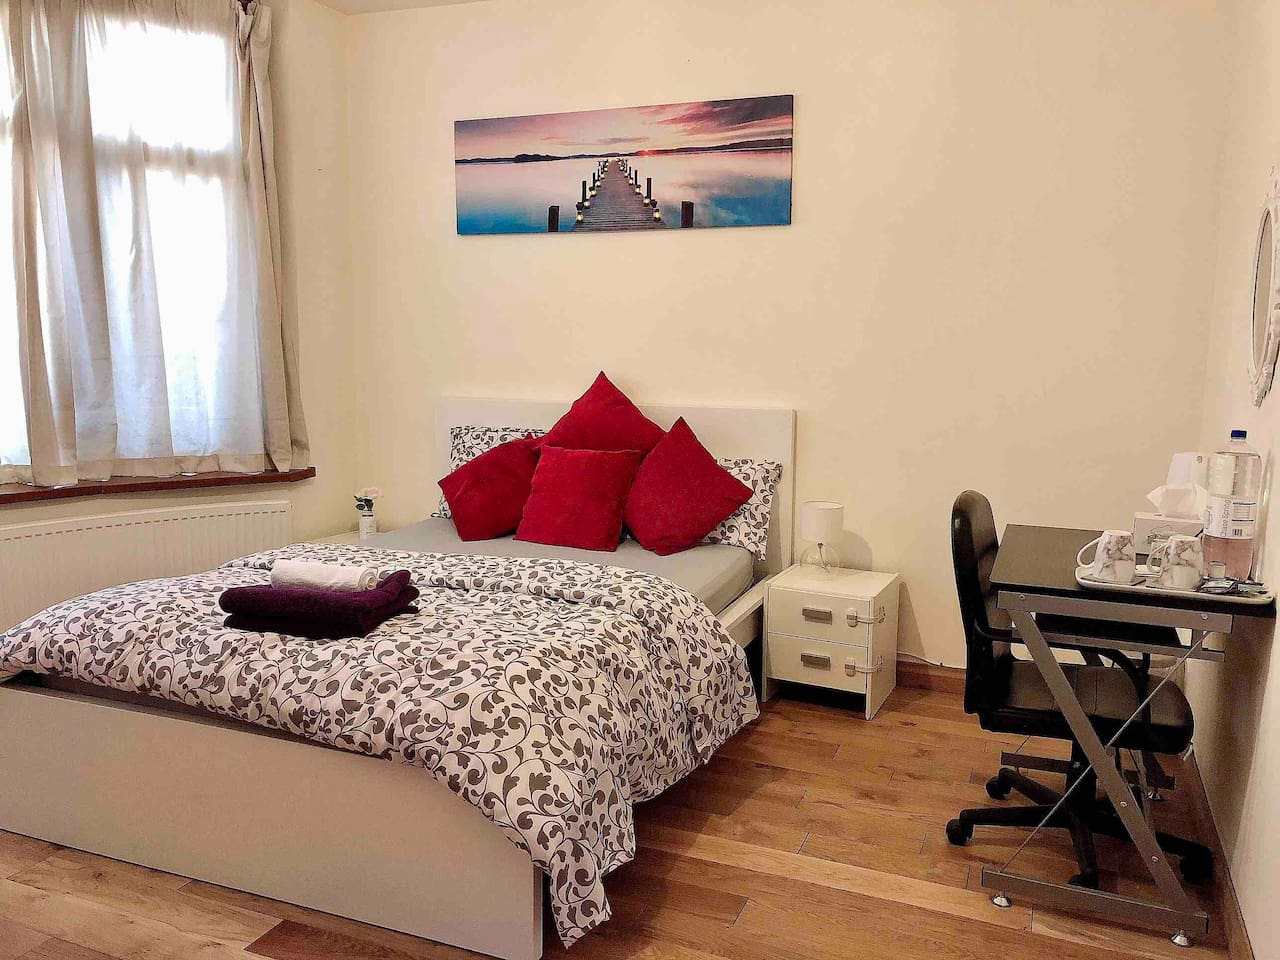 A double bed room